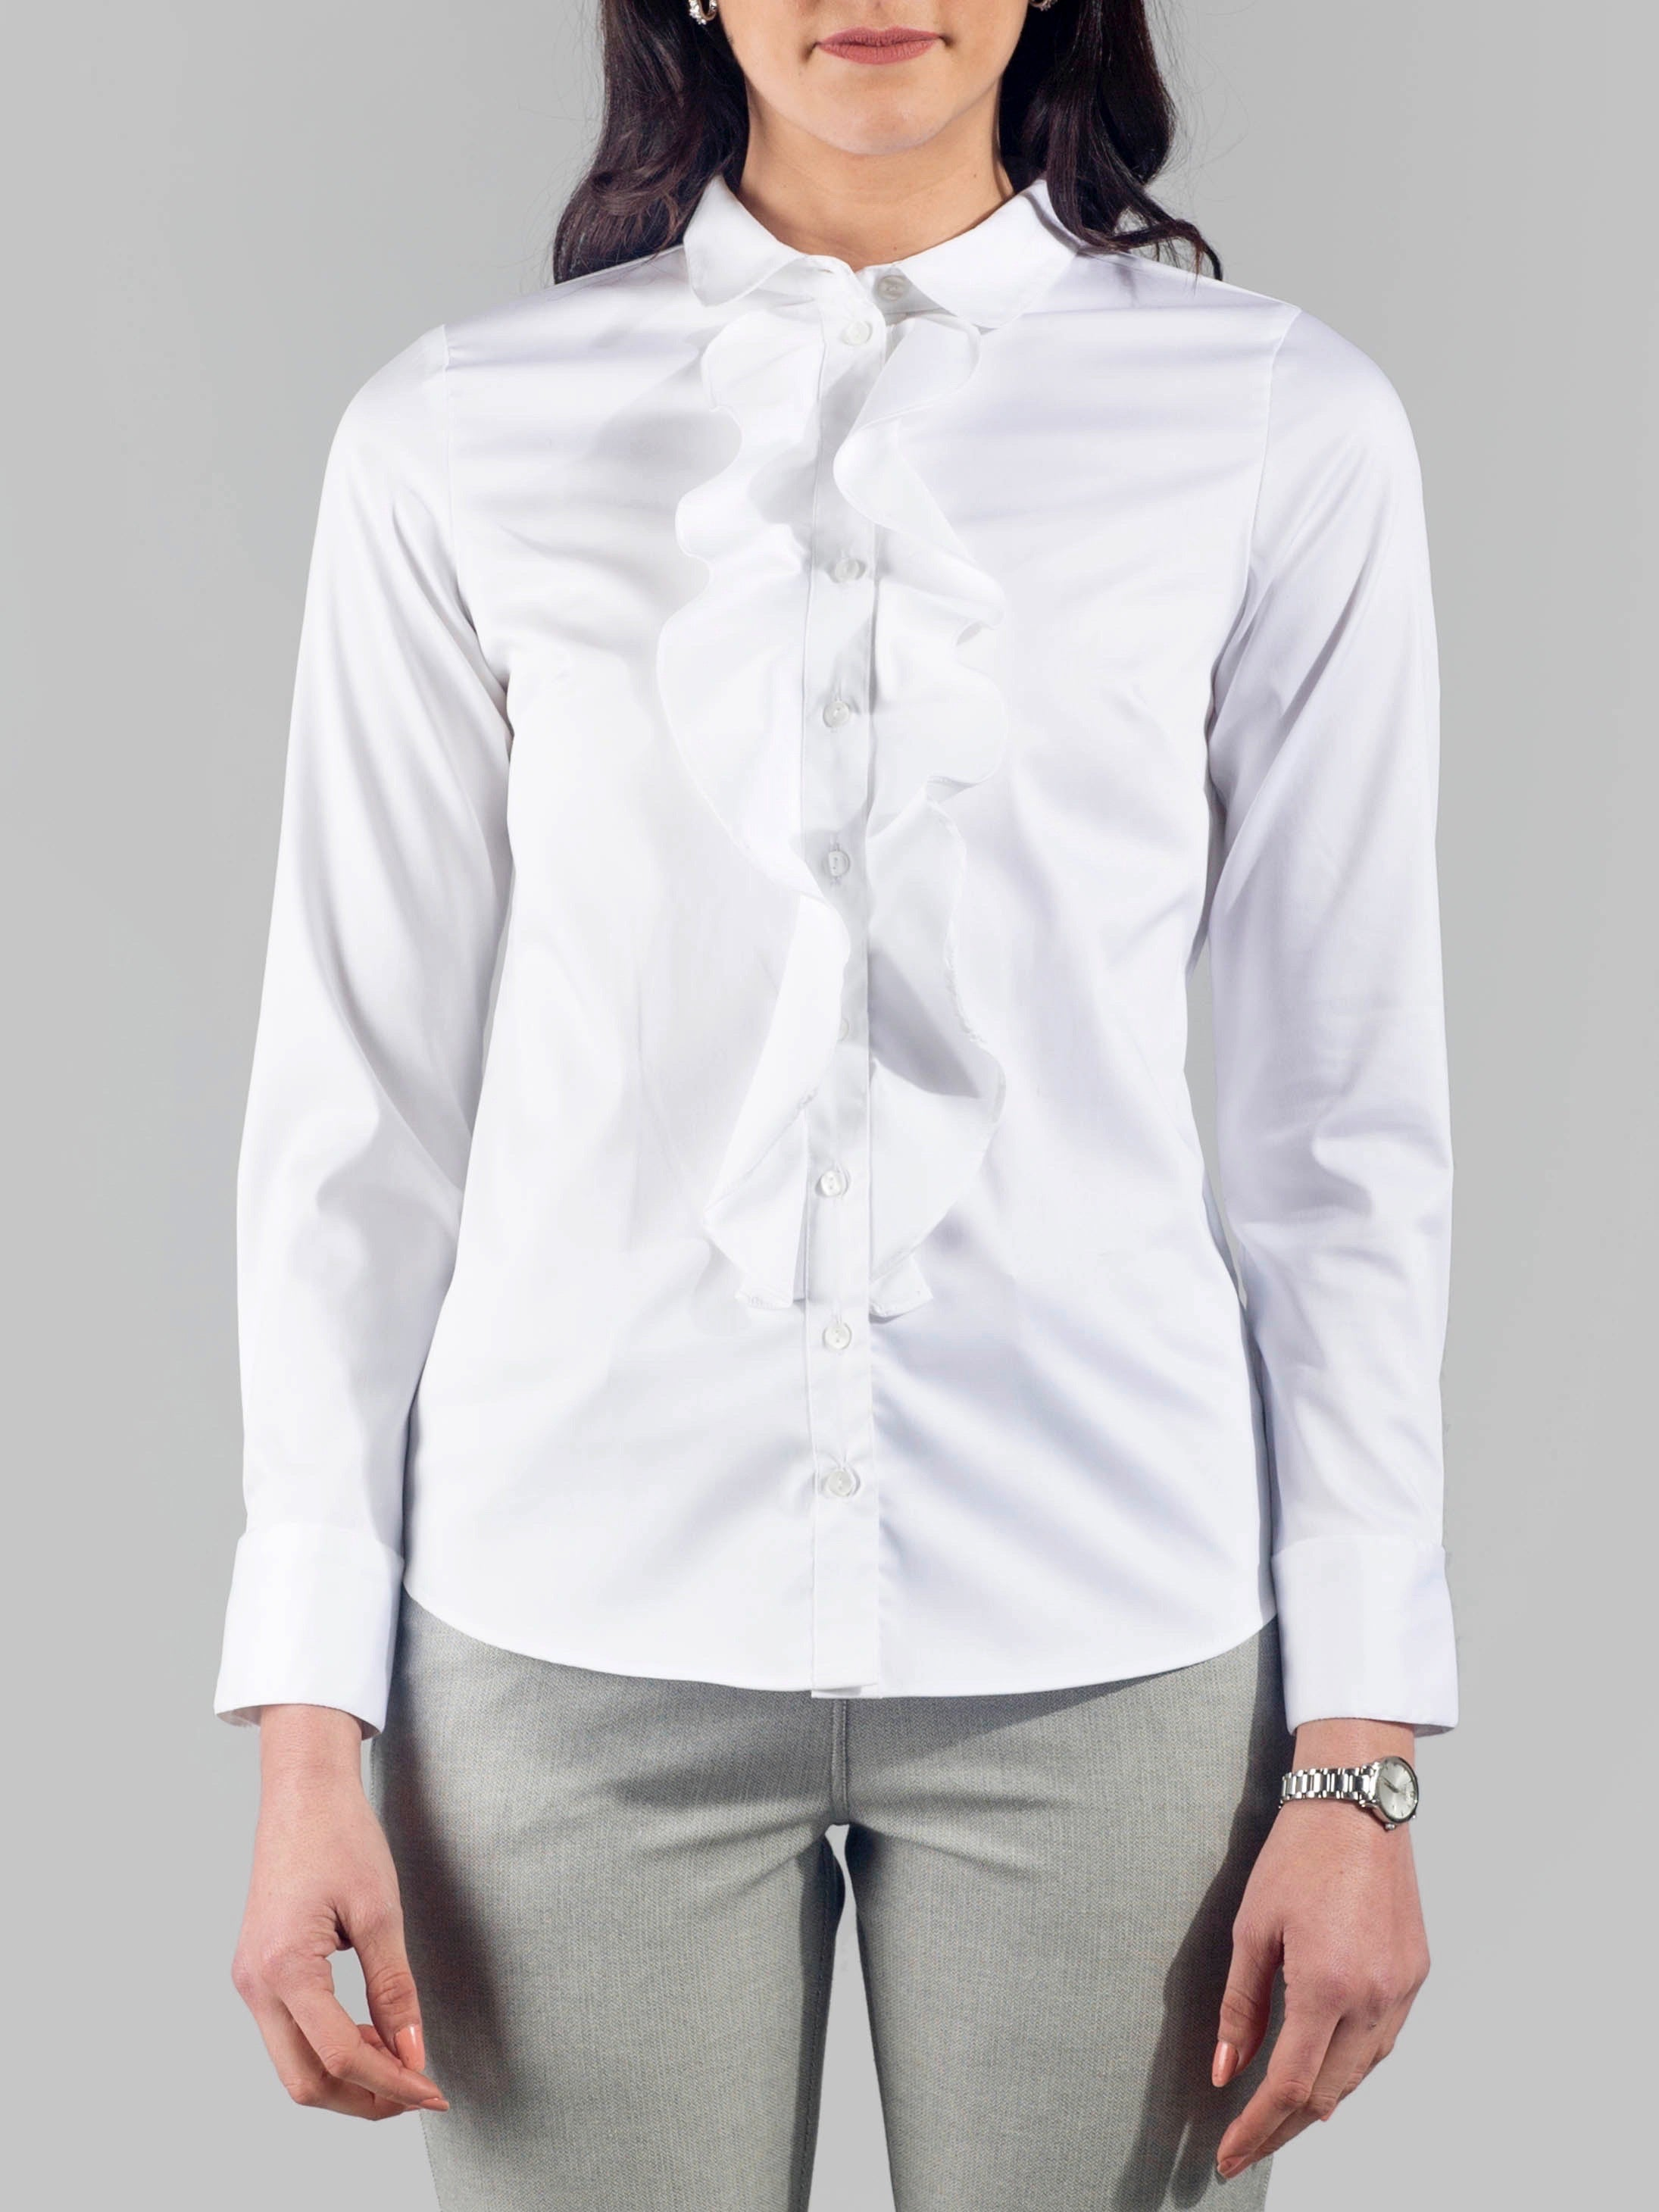 Club Collar Ruffle Placket Shirt - White